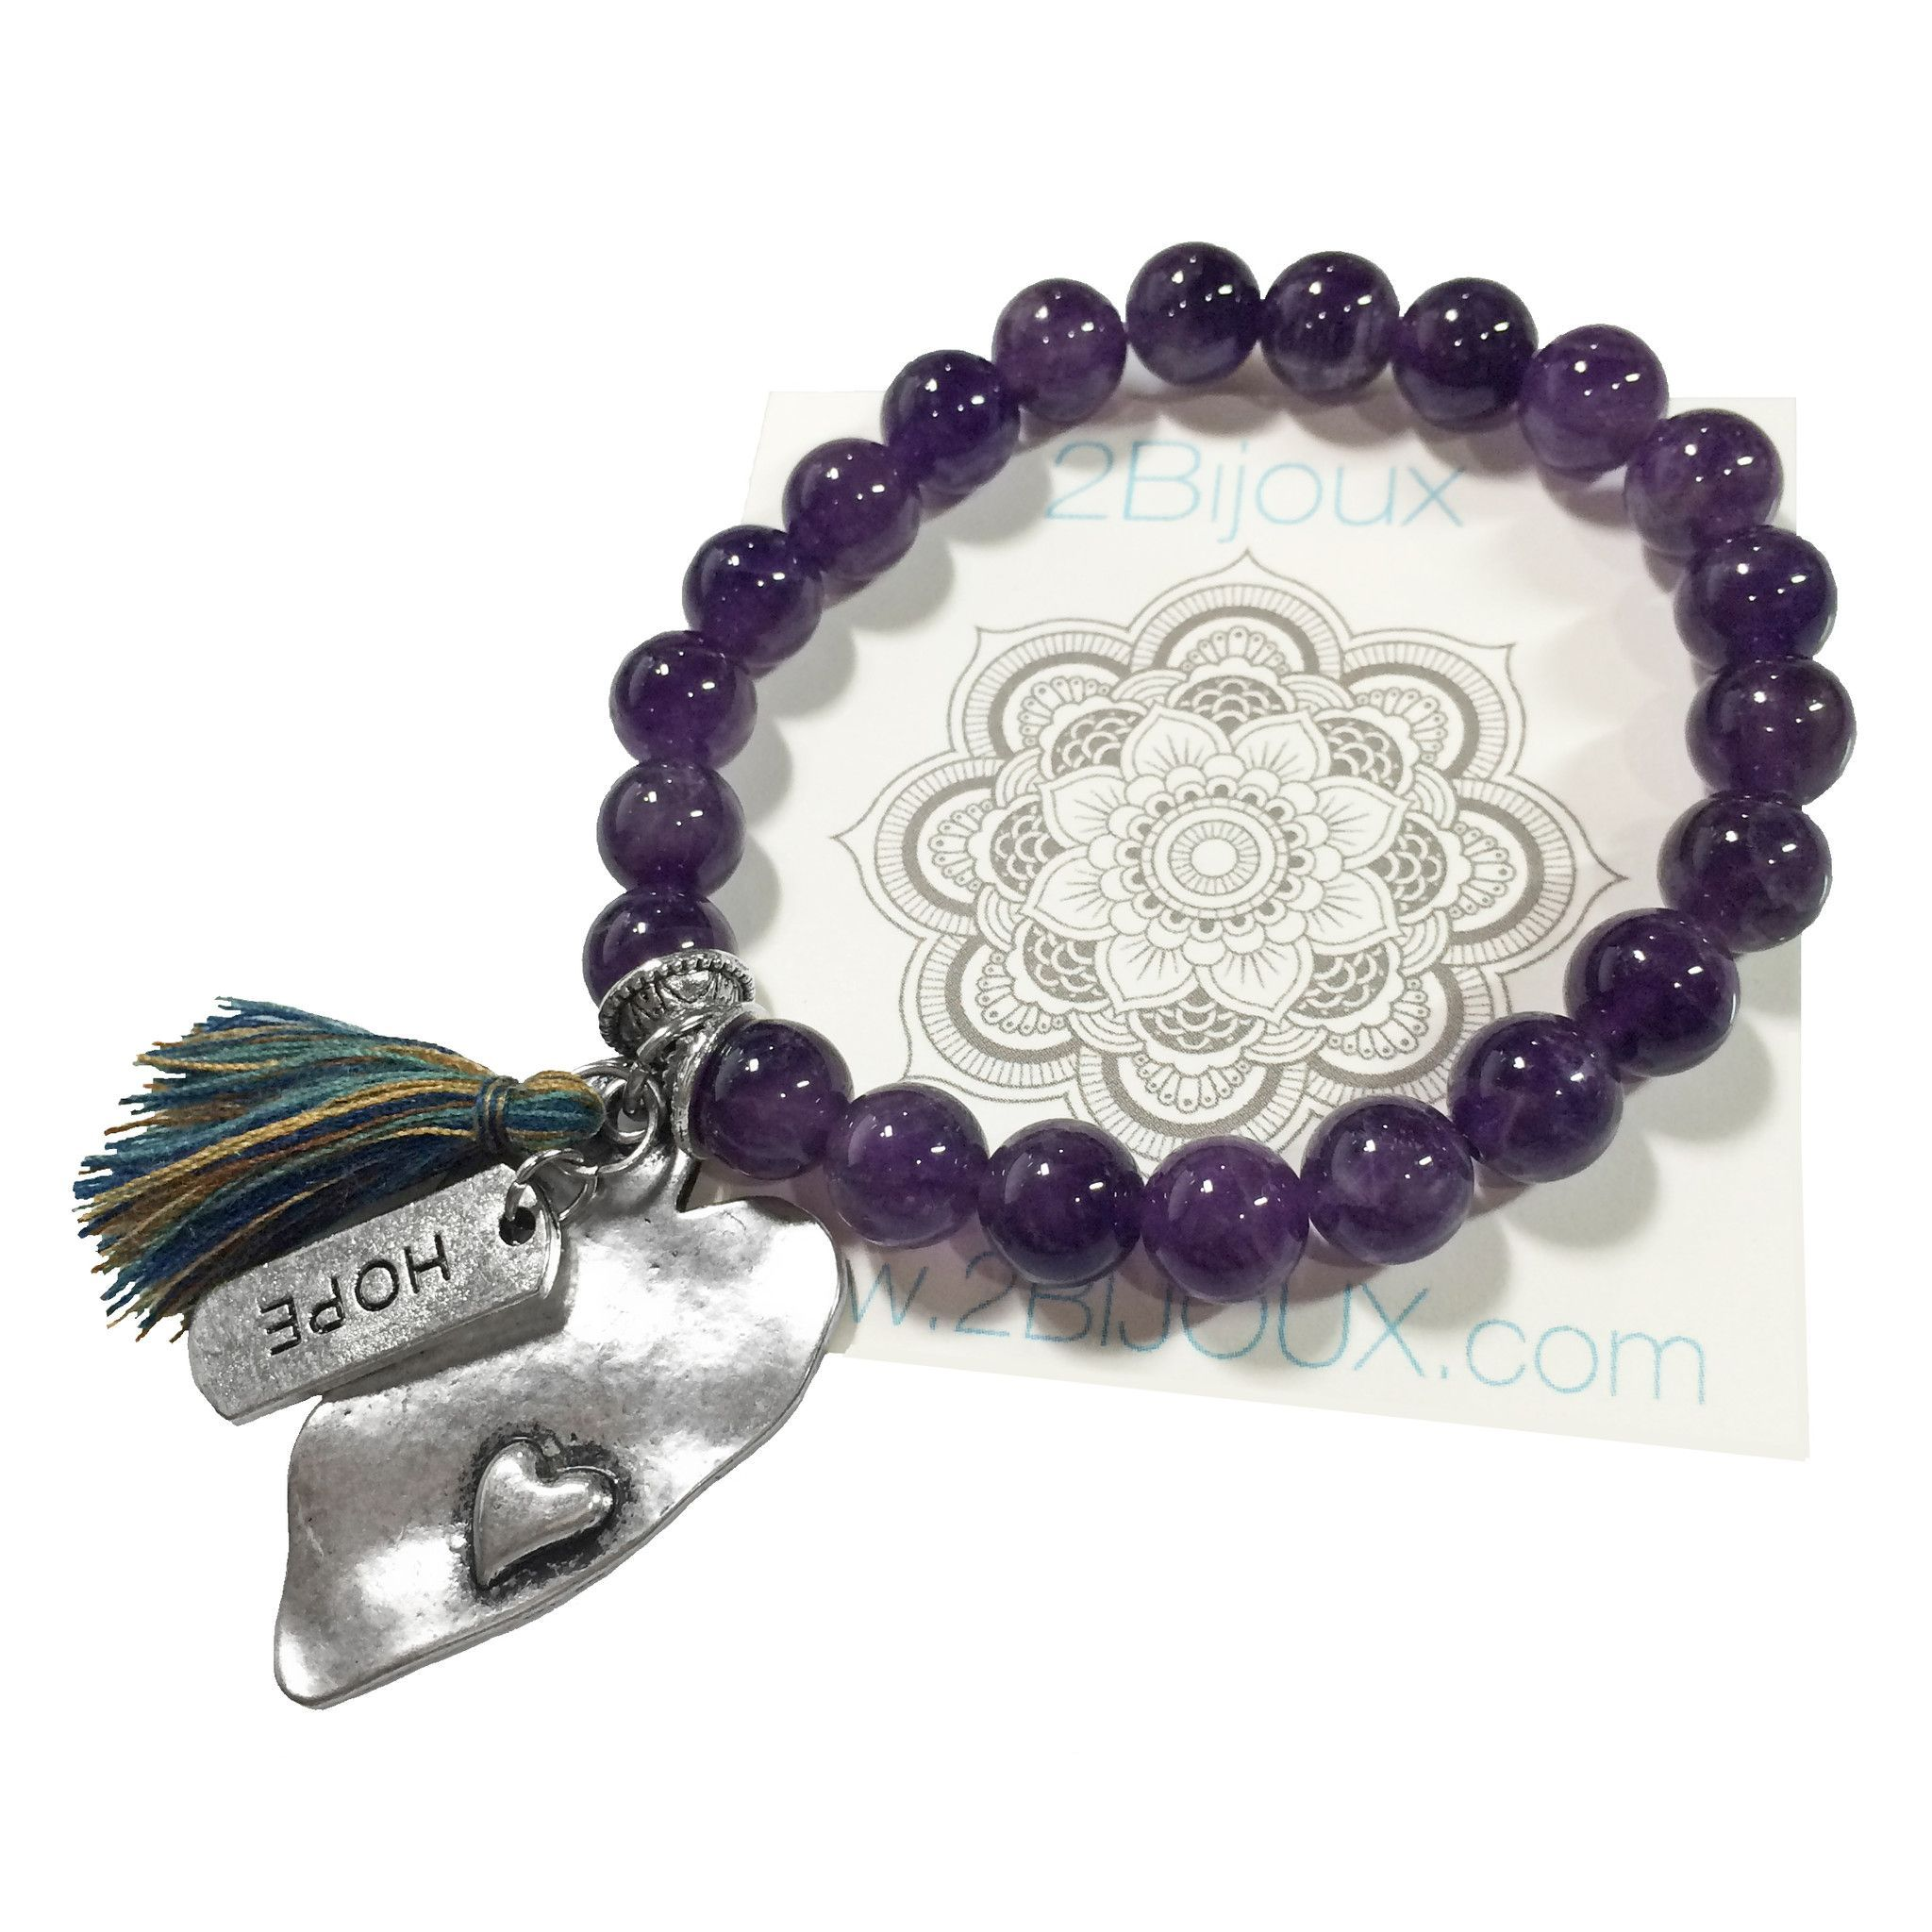 awareness dp disease amazon alzheimerss alzheimer cancer purple jewelry bracelet alzheimers pancreatic ribbon com s